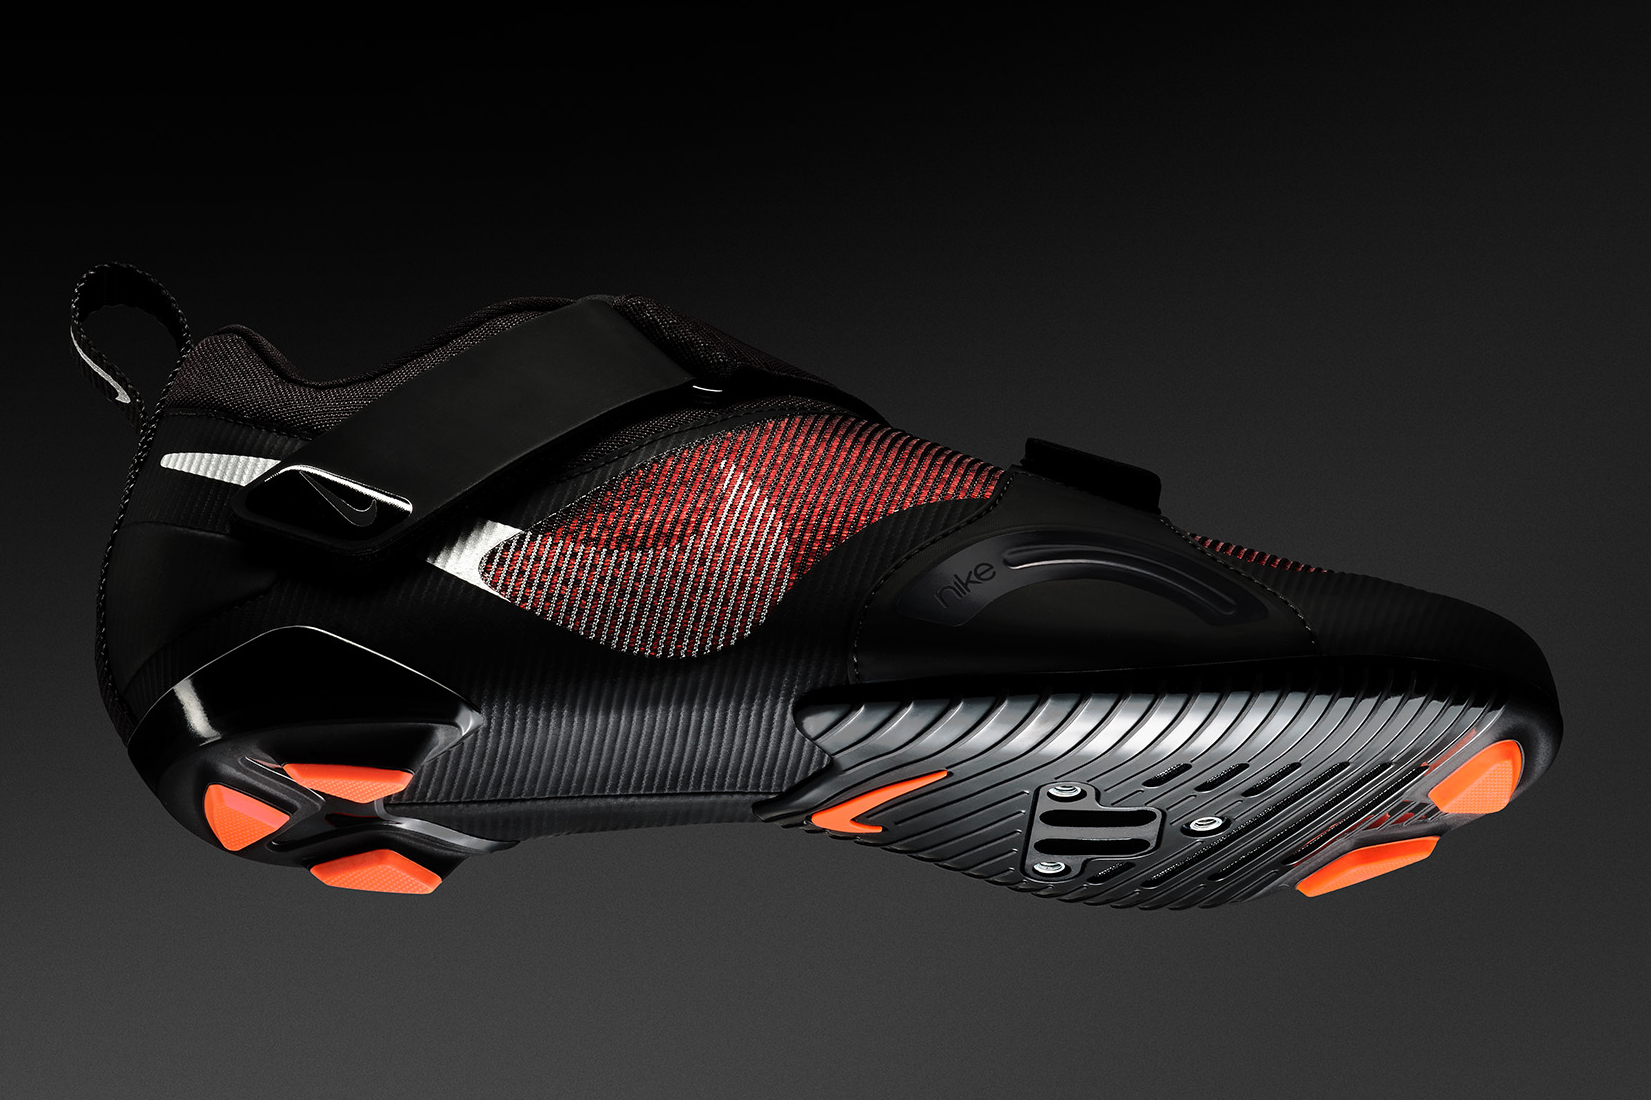 Enojado Antagonista teléfono  Nike Unveils First Indoor Cycling Shoe: The SuperRep Cycle | GearJunkie